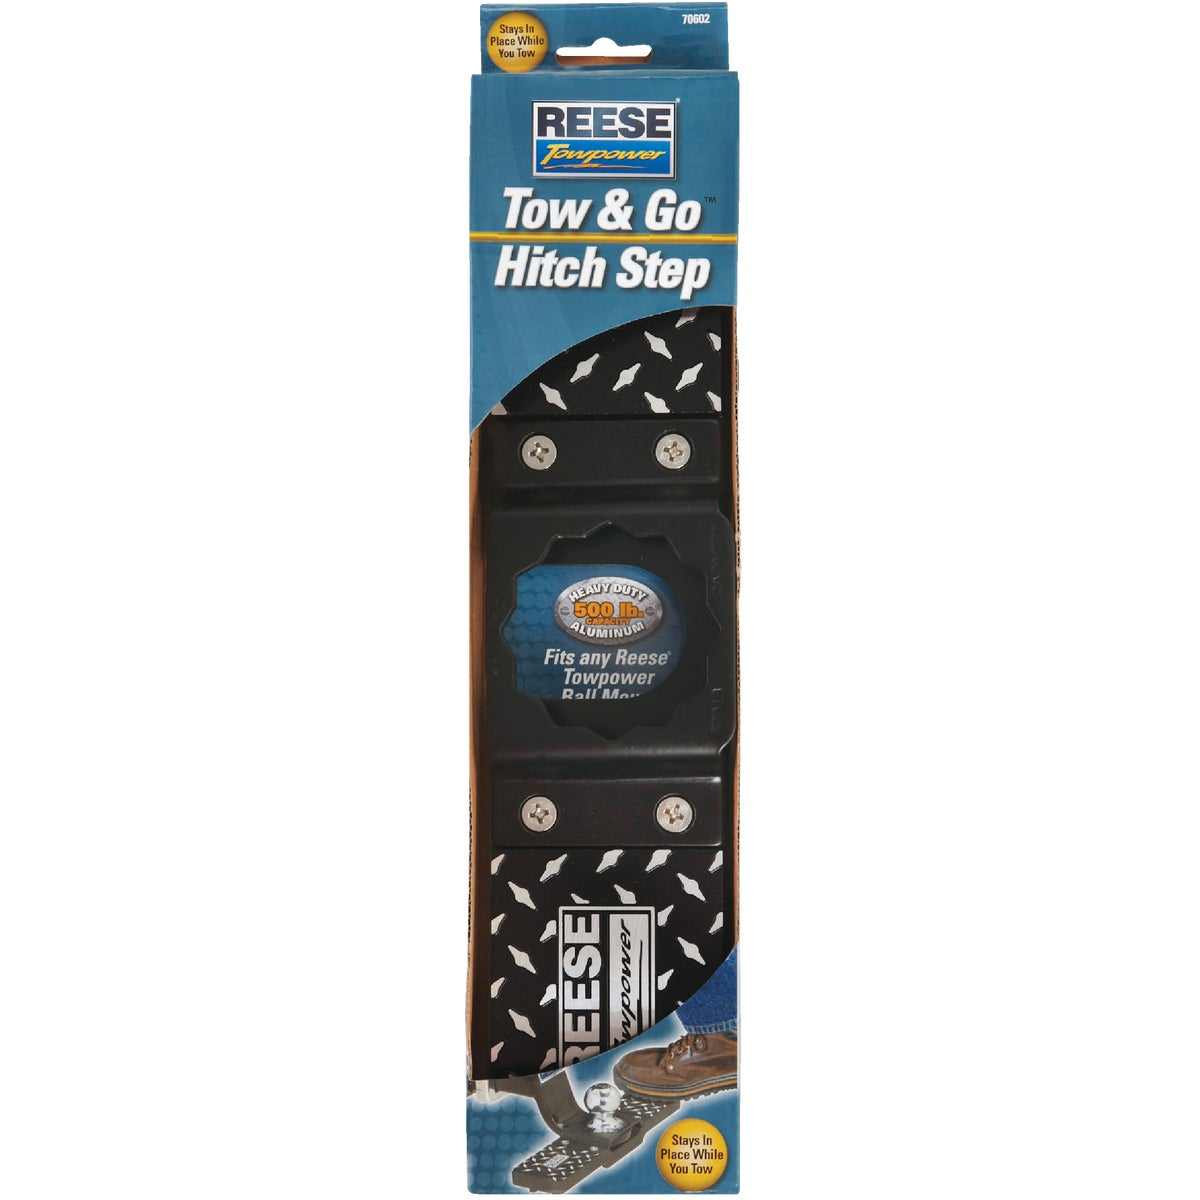 Tow & Go Hitch Step